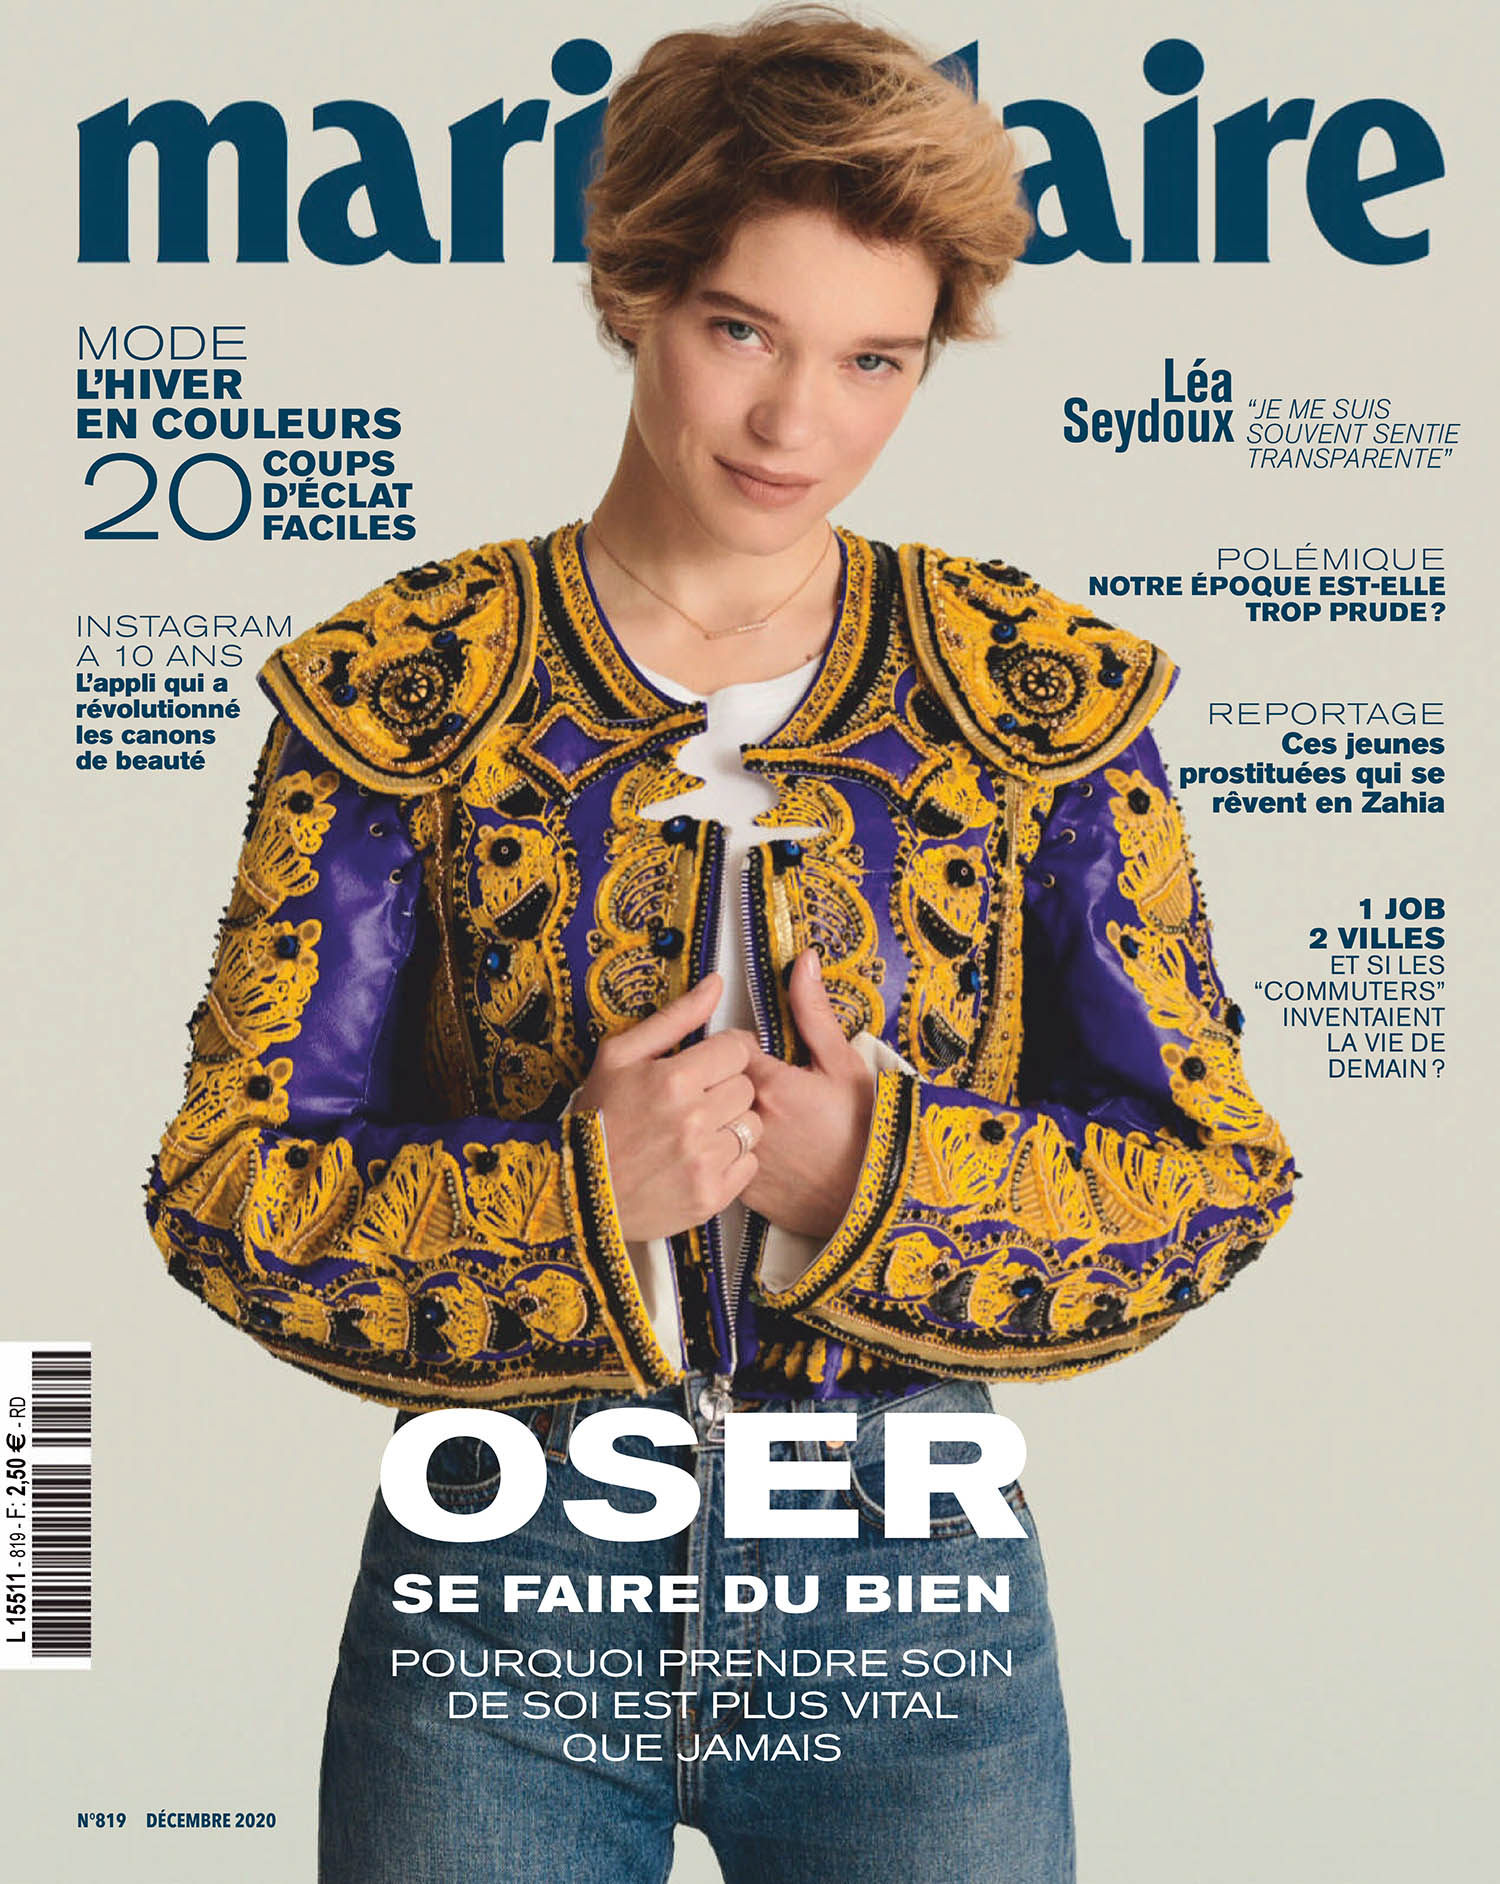 Léa Seydoux covers Marie Claire France December 2020 by Philip Gay